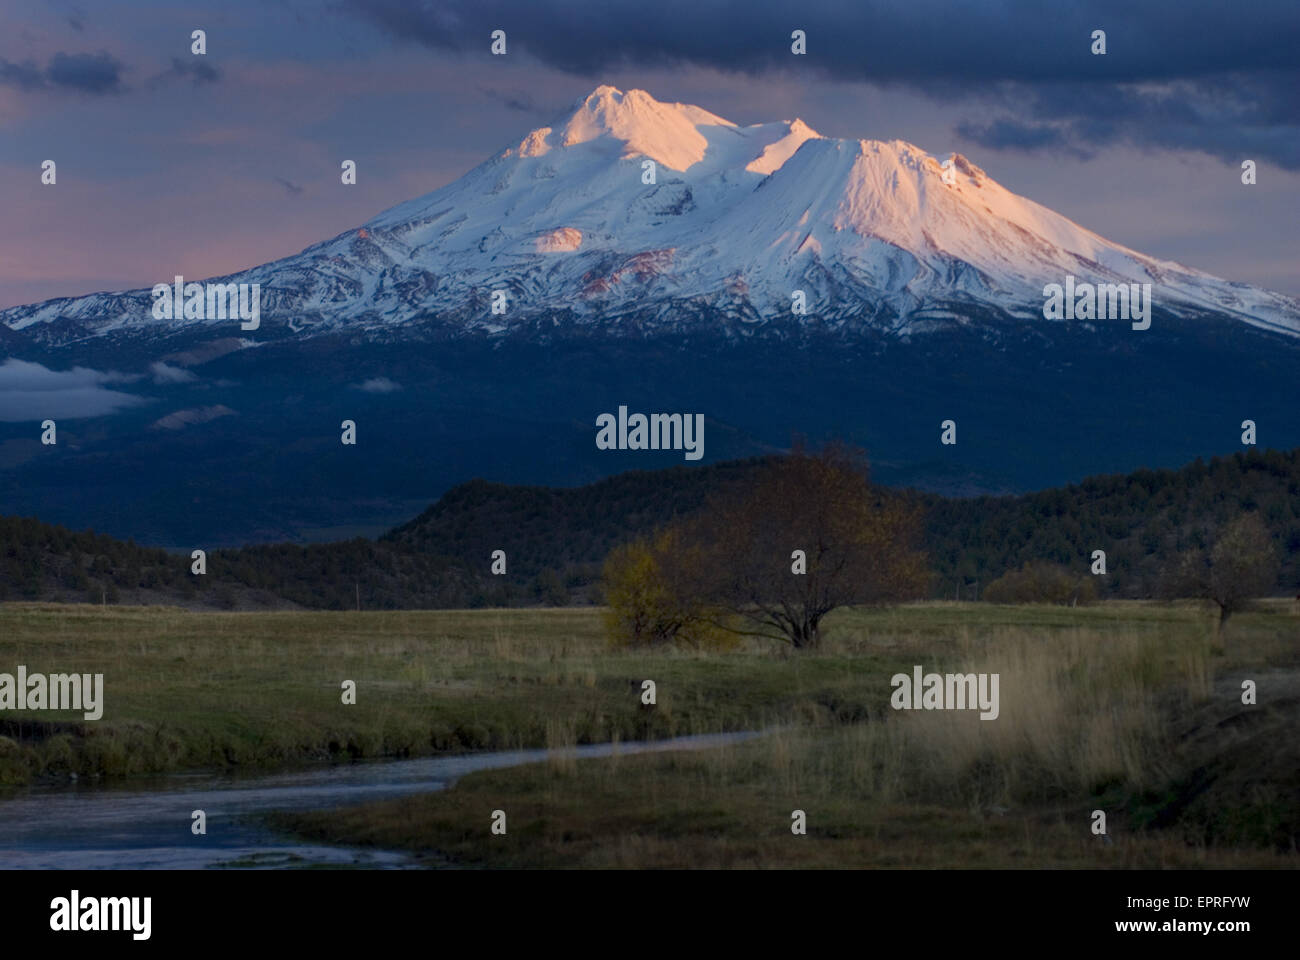 Mount Shasta and the Shasta River, Mt. Shasta, CA - Stock Image